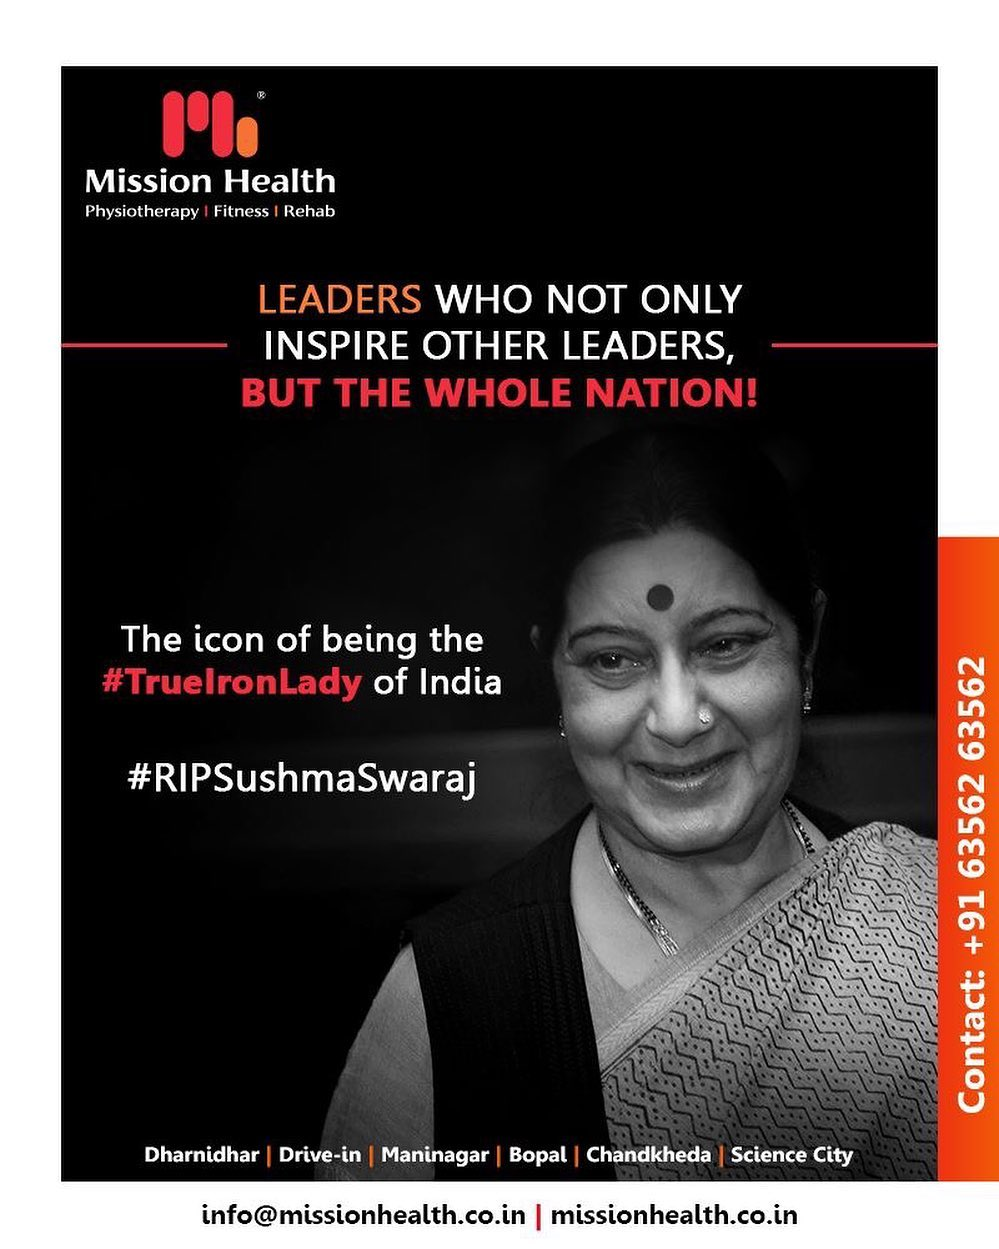 Leaders who not only inspire other leaders, but the whole nation! The icon of being the #TrueIronLady of India  #RIPSushmaSwaraj #RIPSushmaJi #IronLady #SushmaSwarajji #MissionHealth #MissionHealthIndia